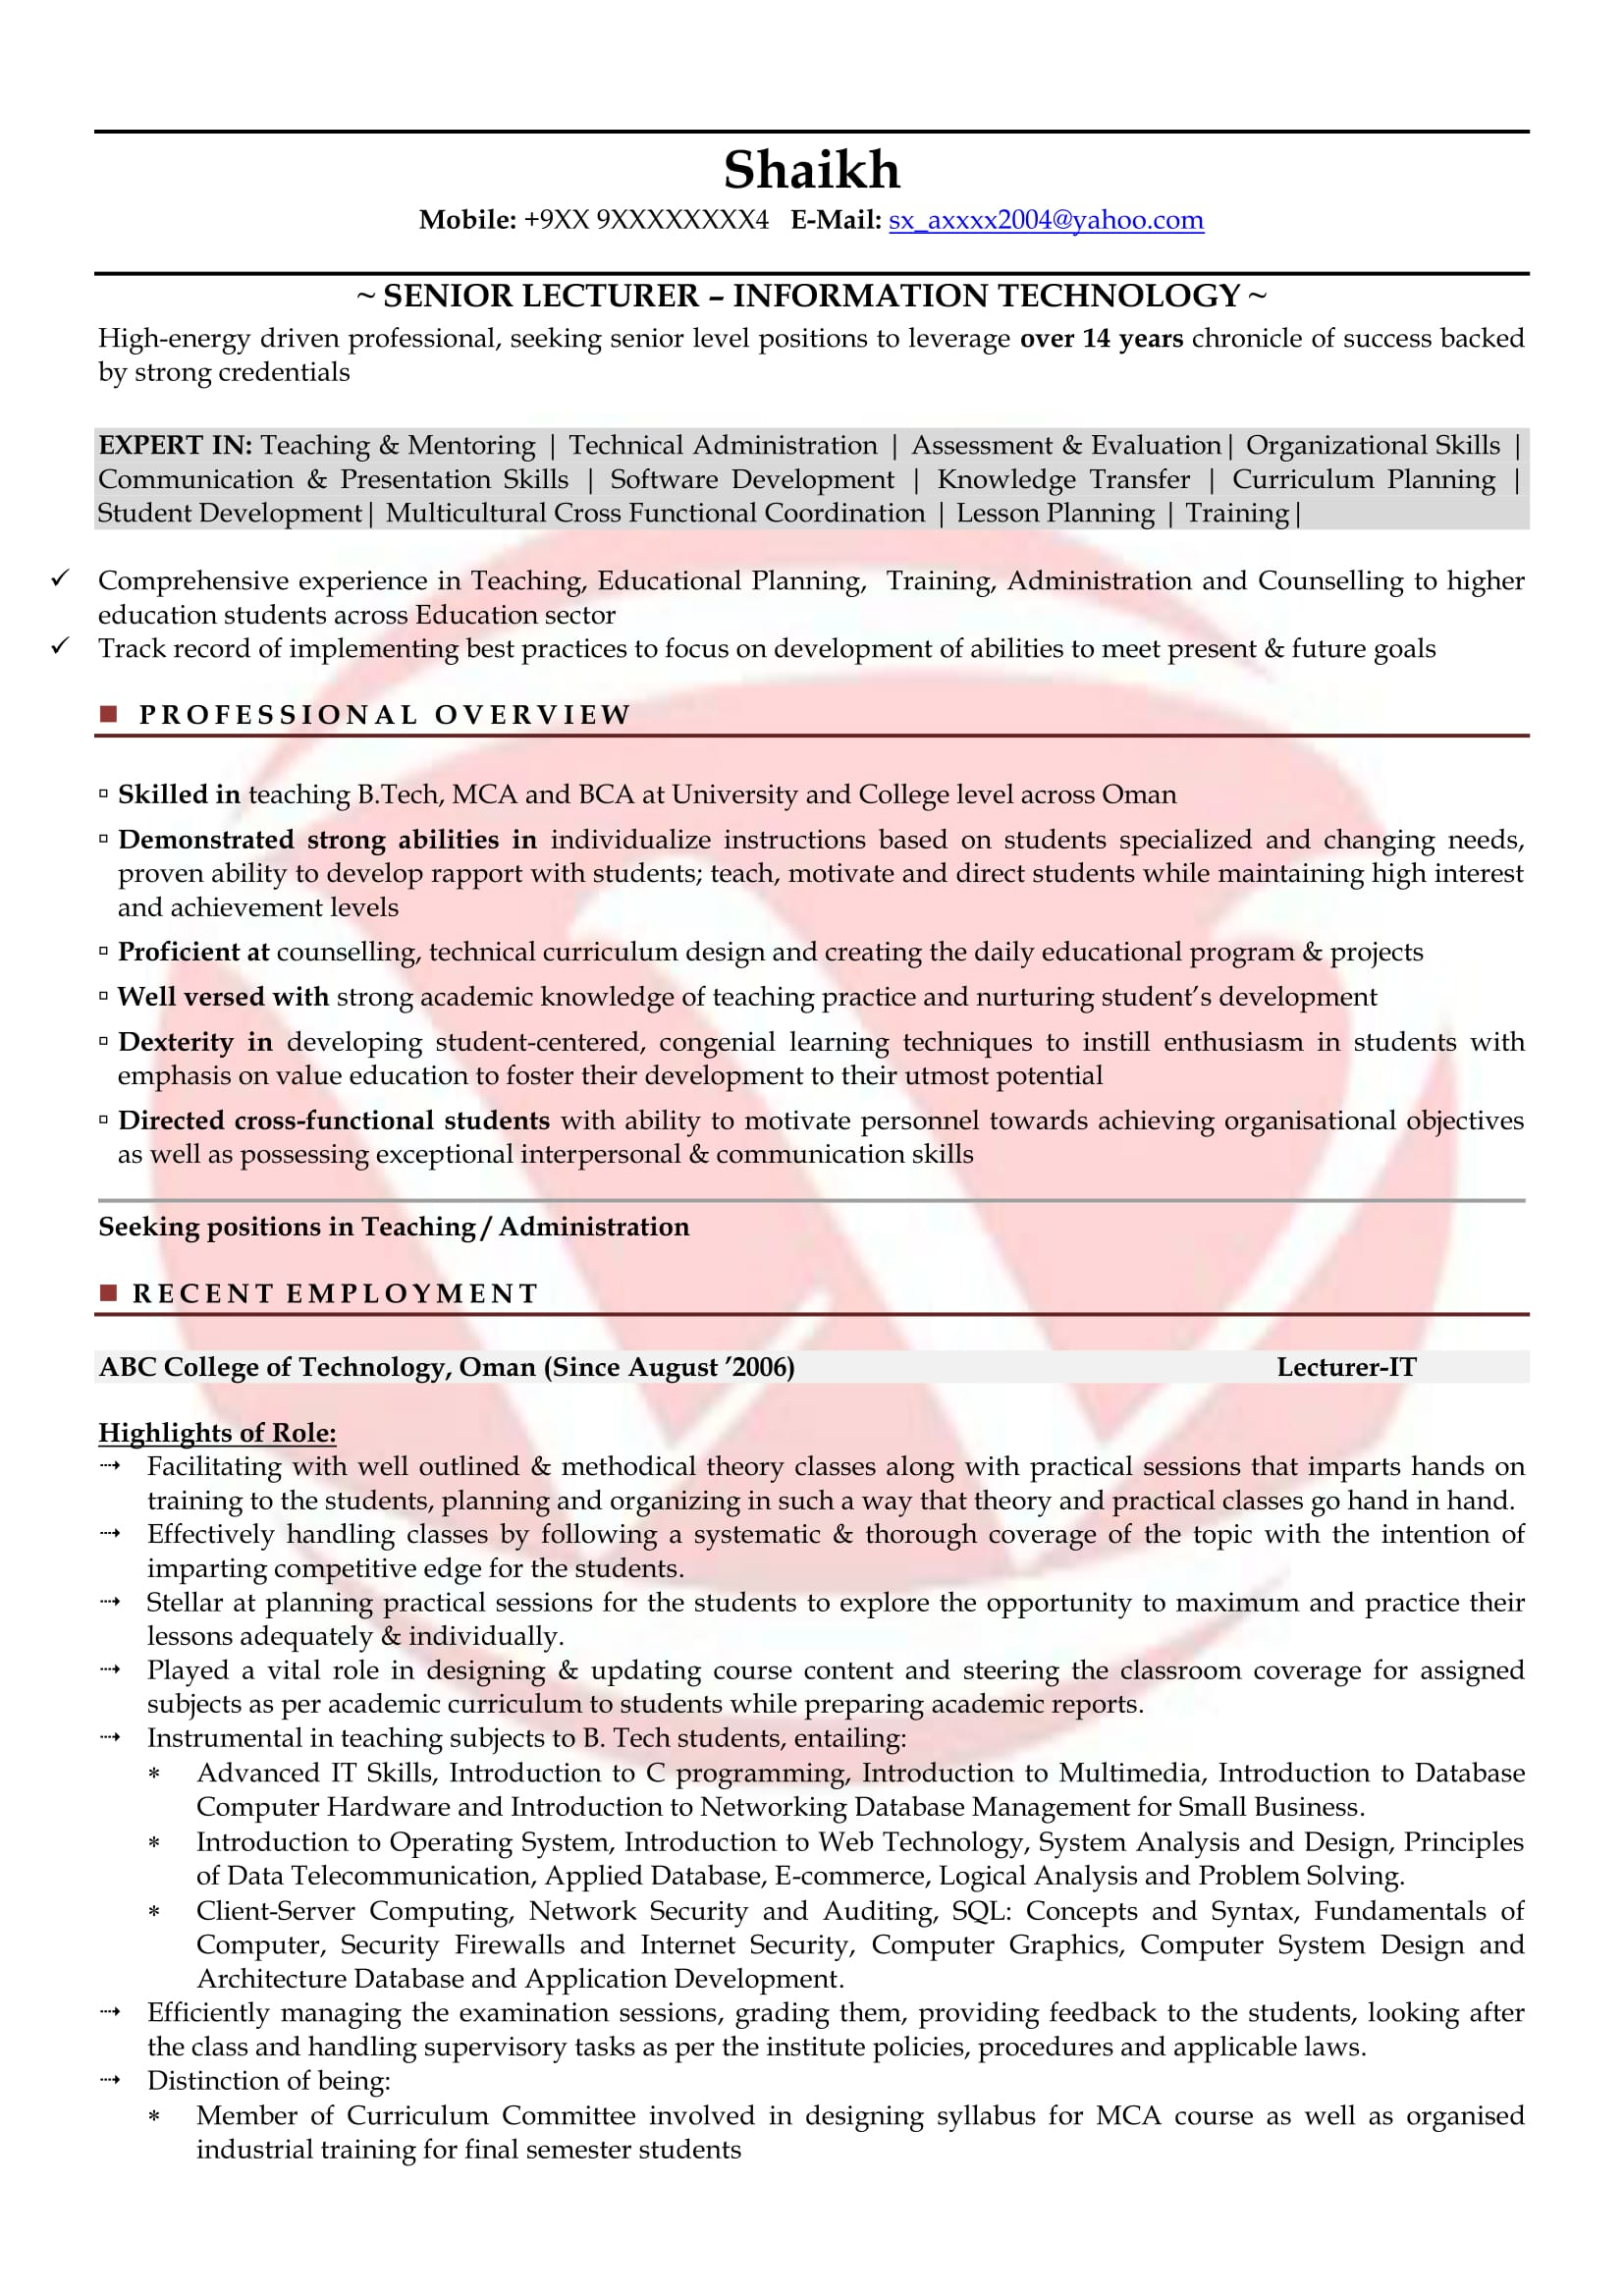 lecturer sample resumes resume format templates chemistry free for first time job seekers Resume Chemistry Lecturer Resume